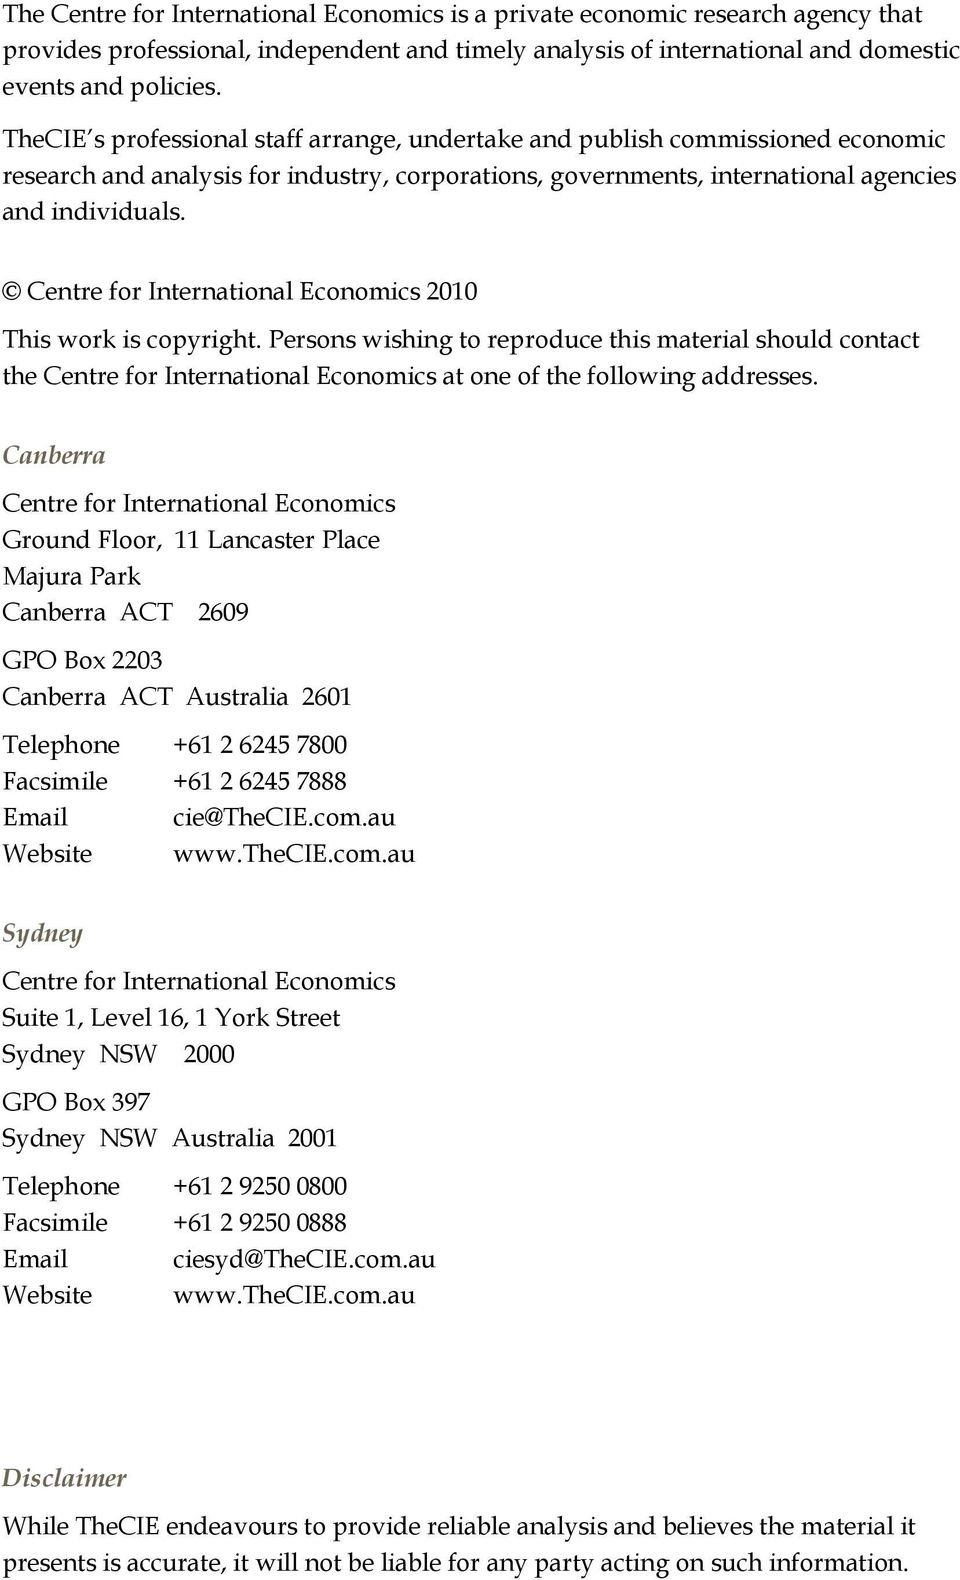 Centre for International Economics 2010 This work is copyright. Persons wishing to reproduce this material should contact the Centre for International Economics at one of the following addresses.